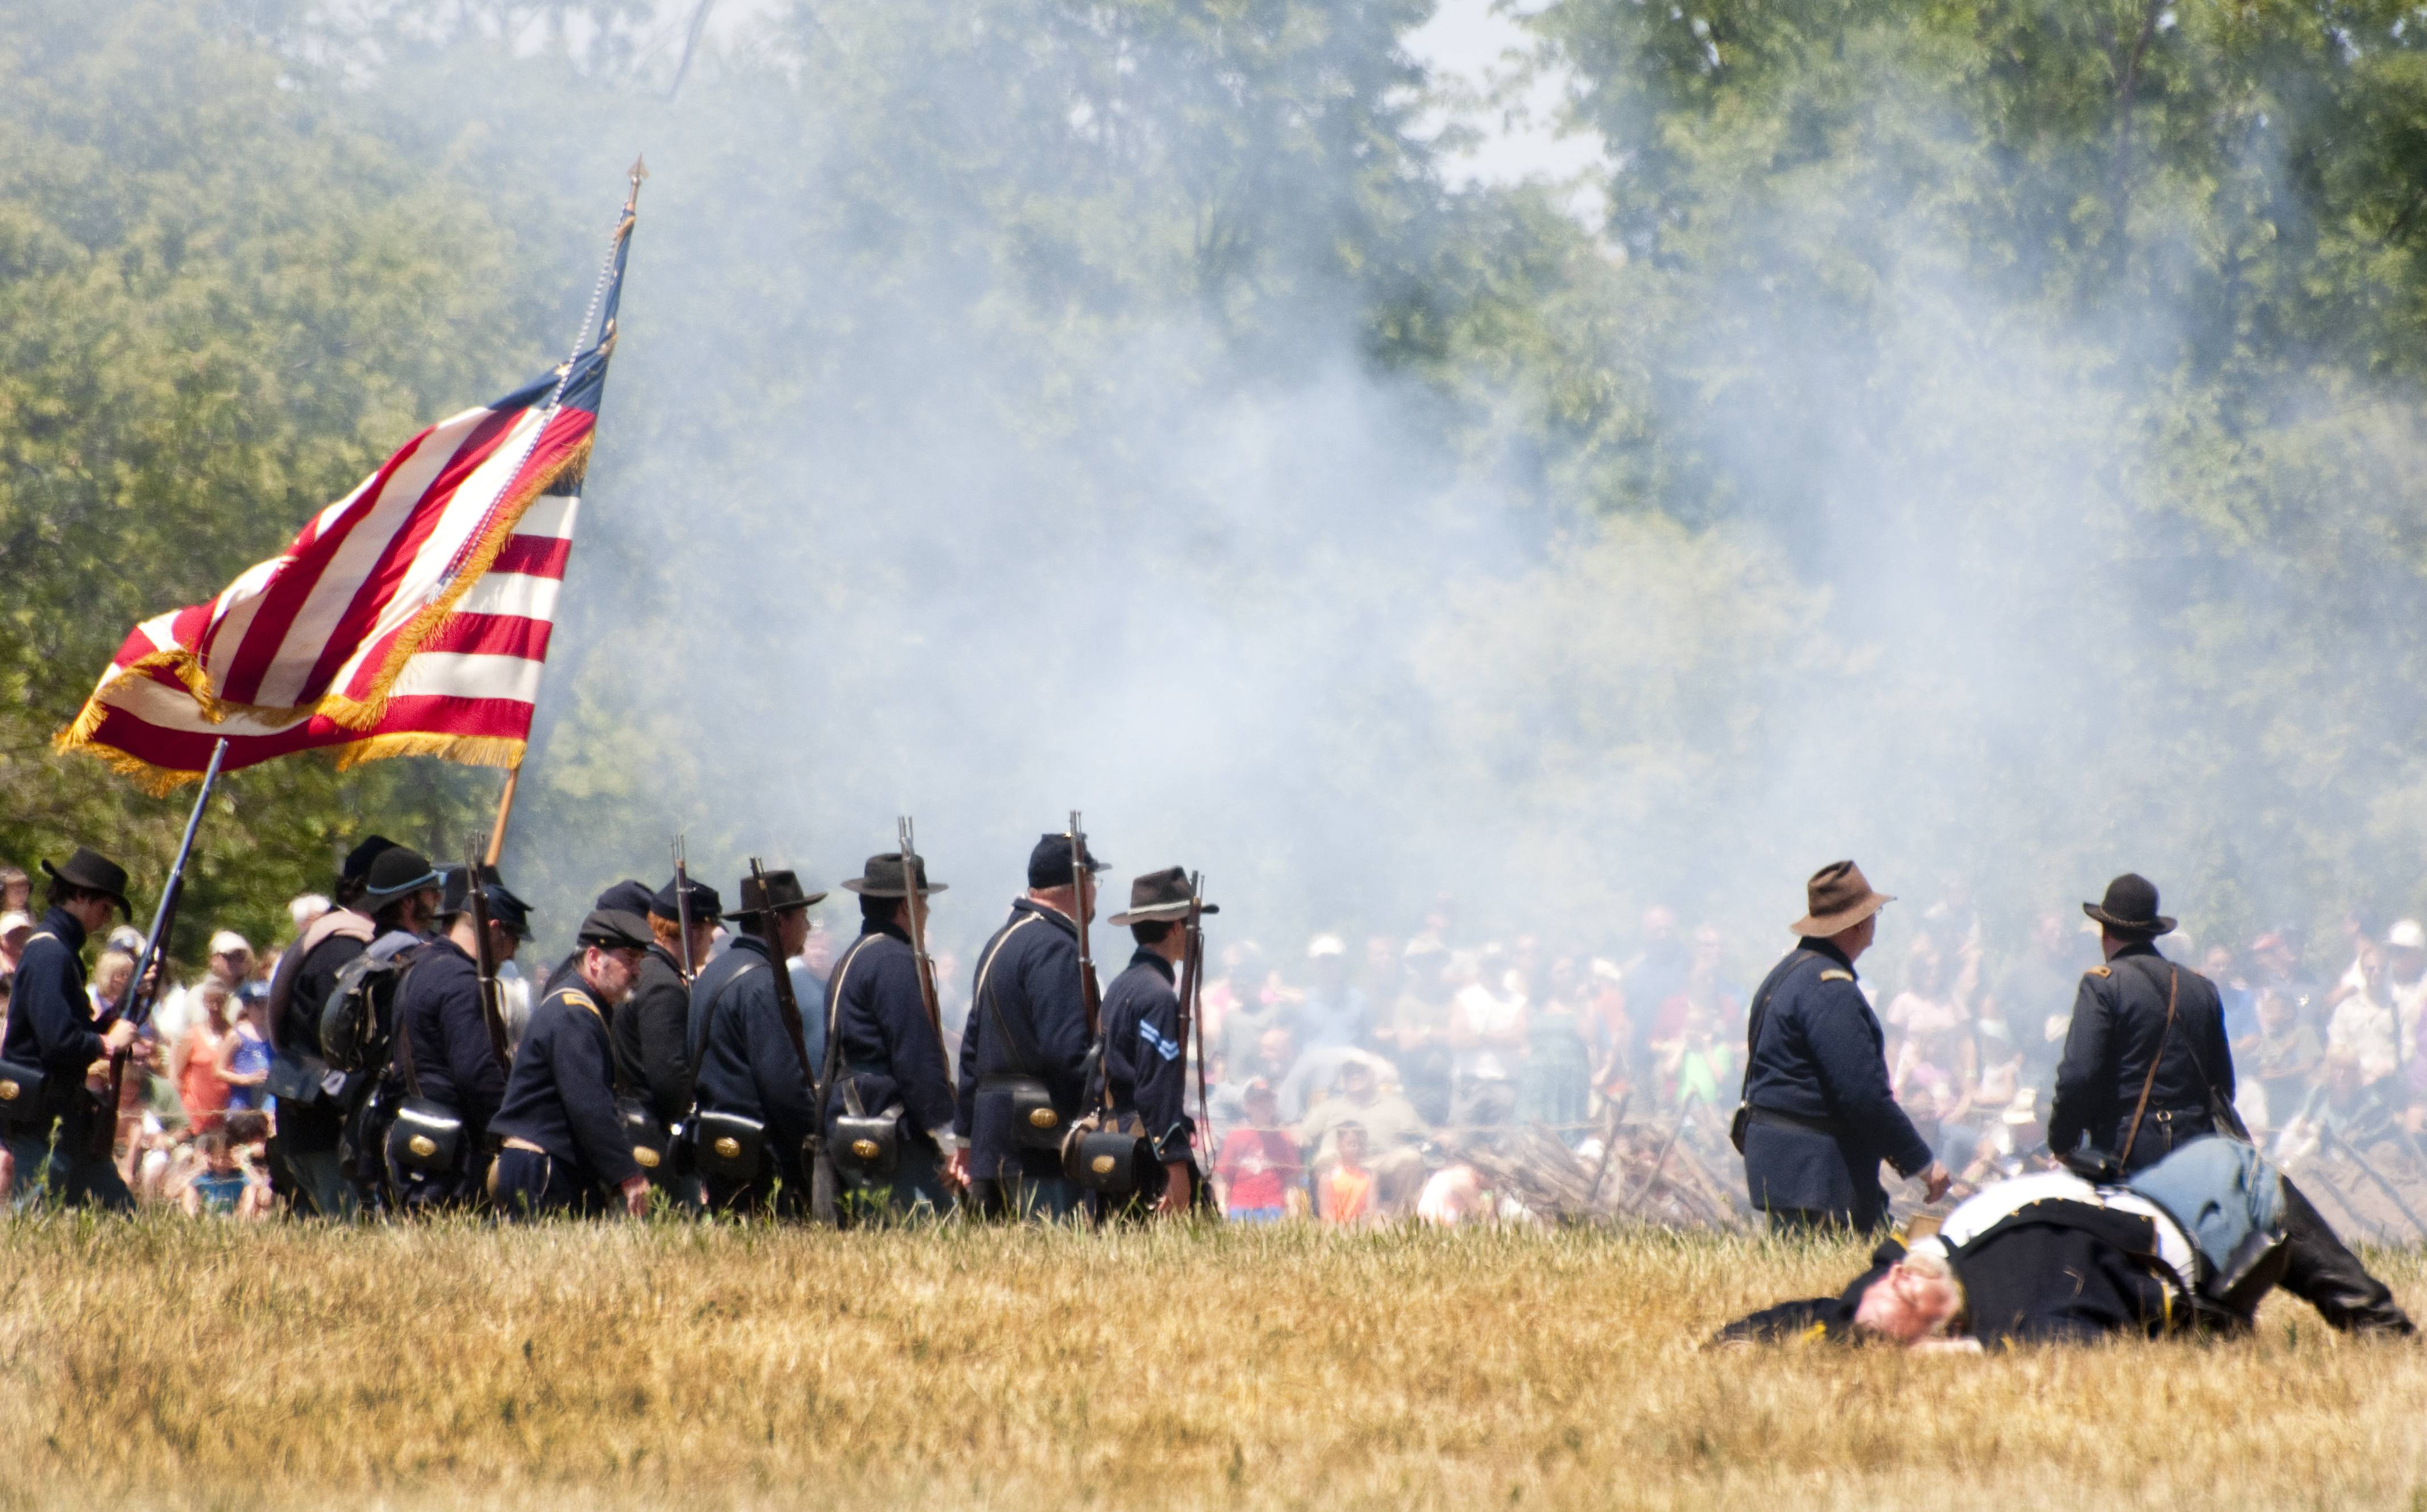 Watch re-enactments of famous Civil War battles at the annual Civil War Days event at the Lakewood Forest Preserve in Wauconda.